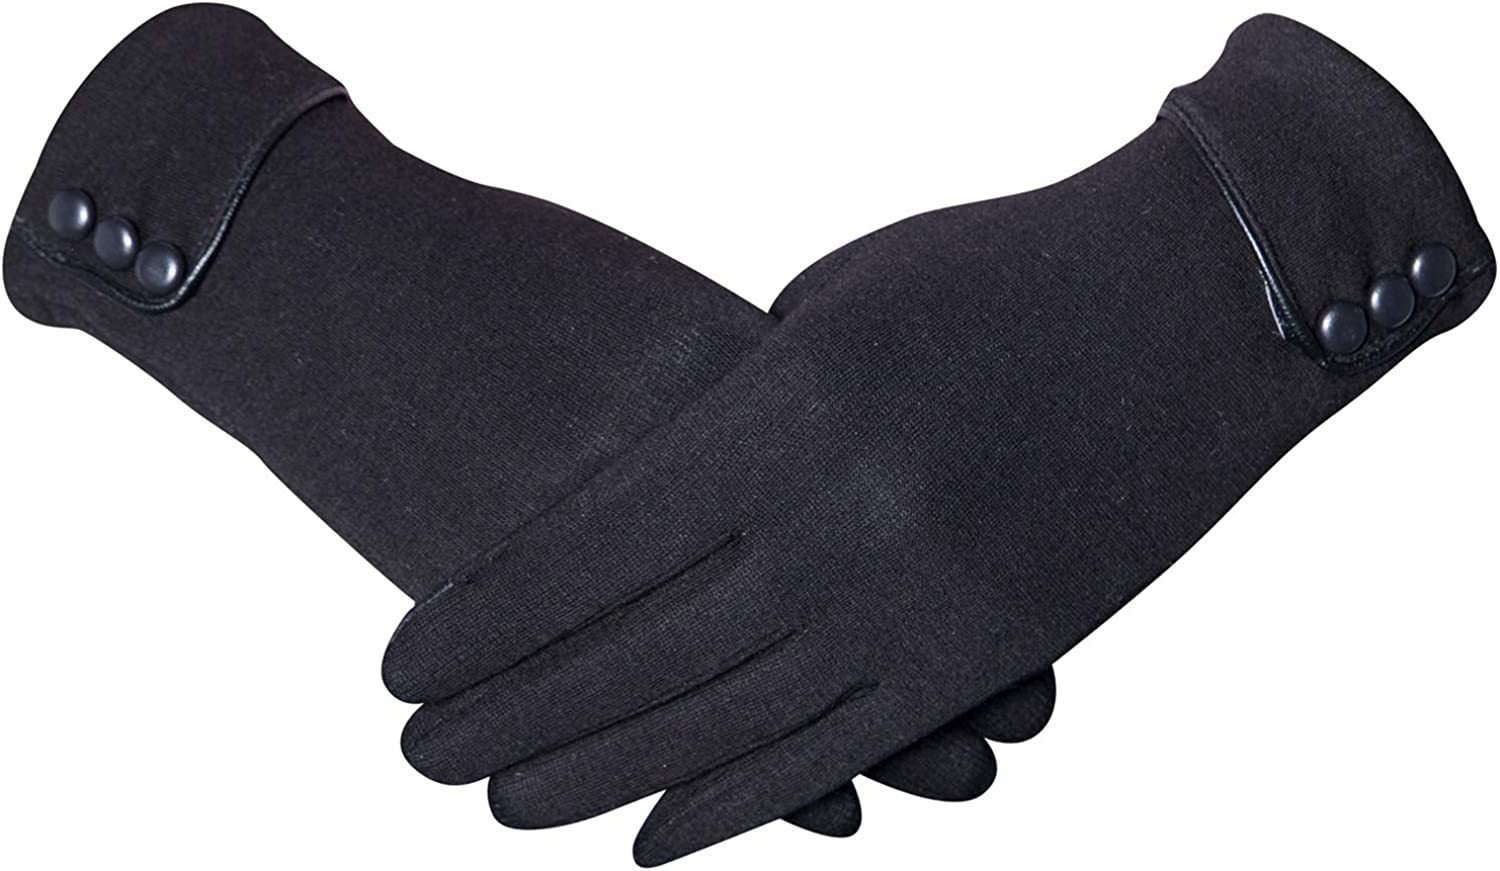 Nakerfop Womens Winter Gloves, Warm Fleece Windproof Touch Screen Gloves for Women Cold Weather Using